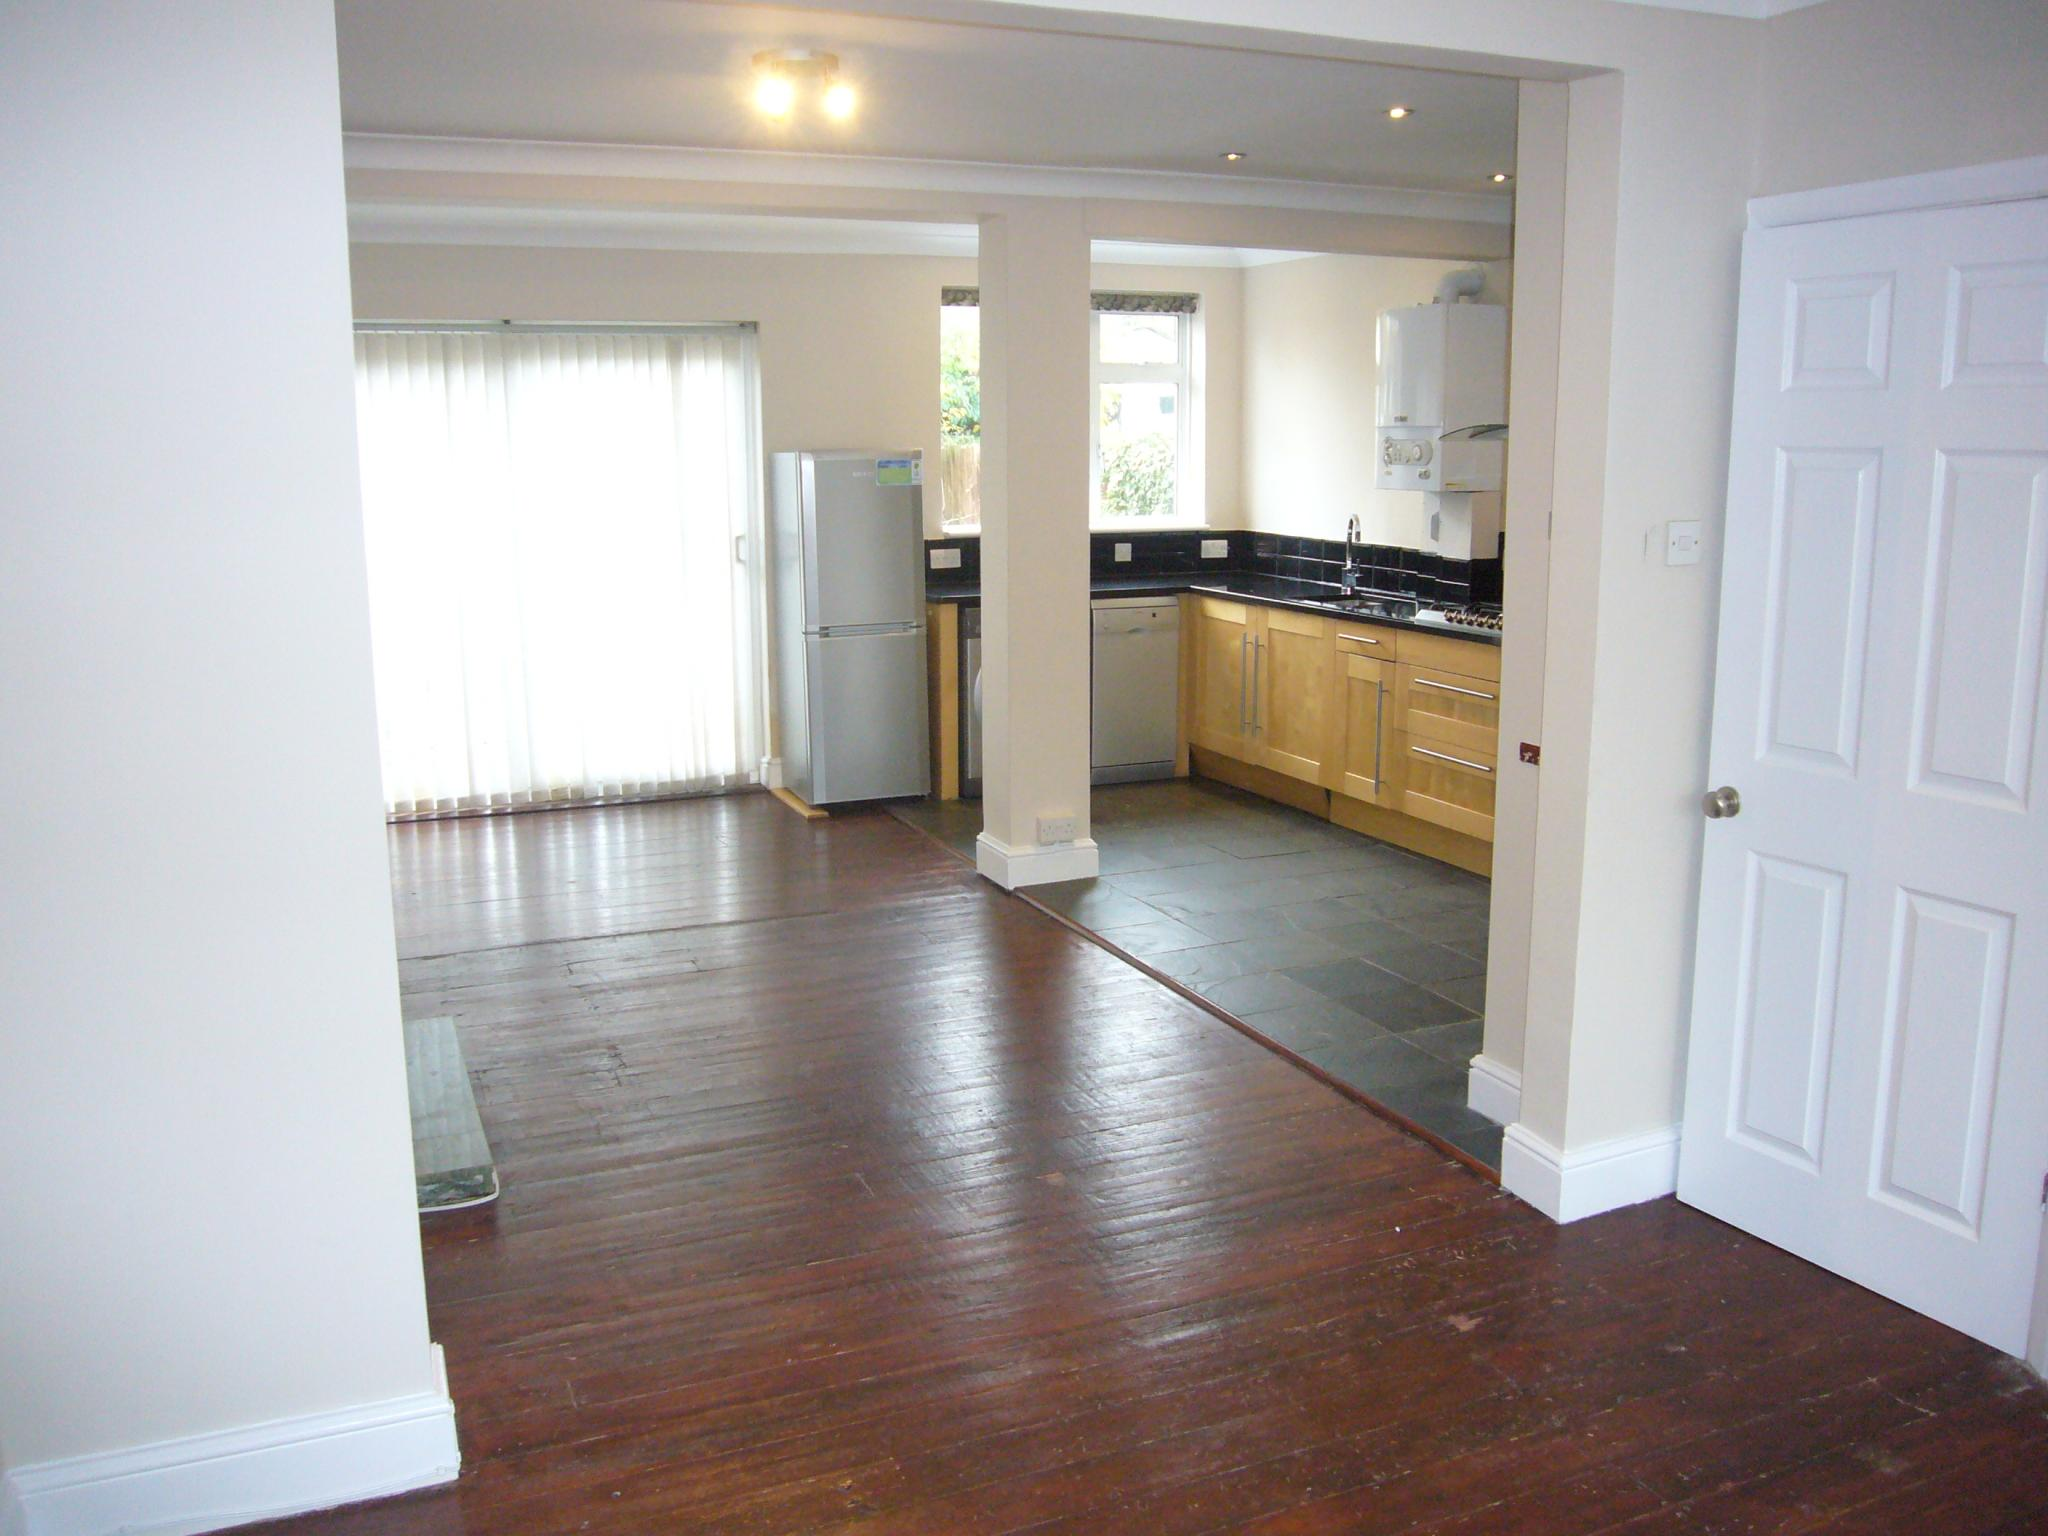 3 bedroom semi-detached house Let Agreed in Worcester Park - Photograph 4.